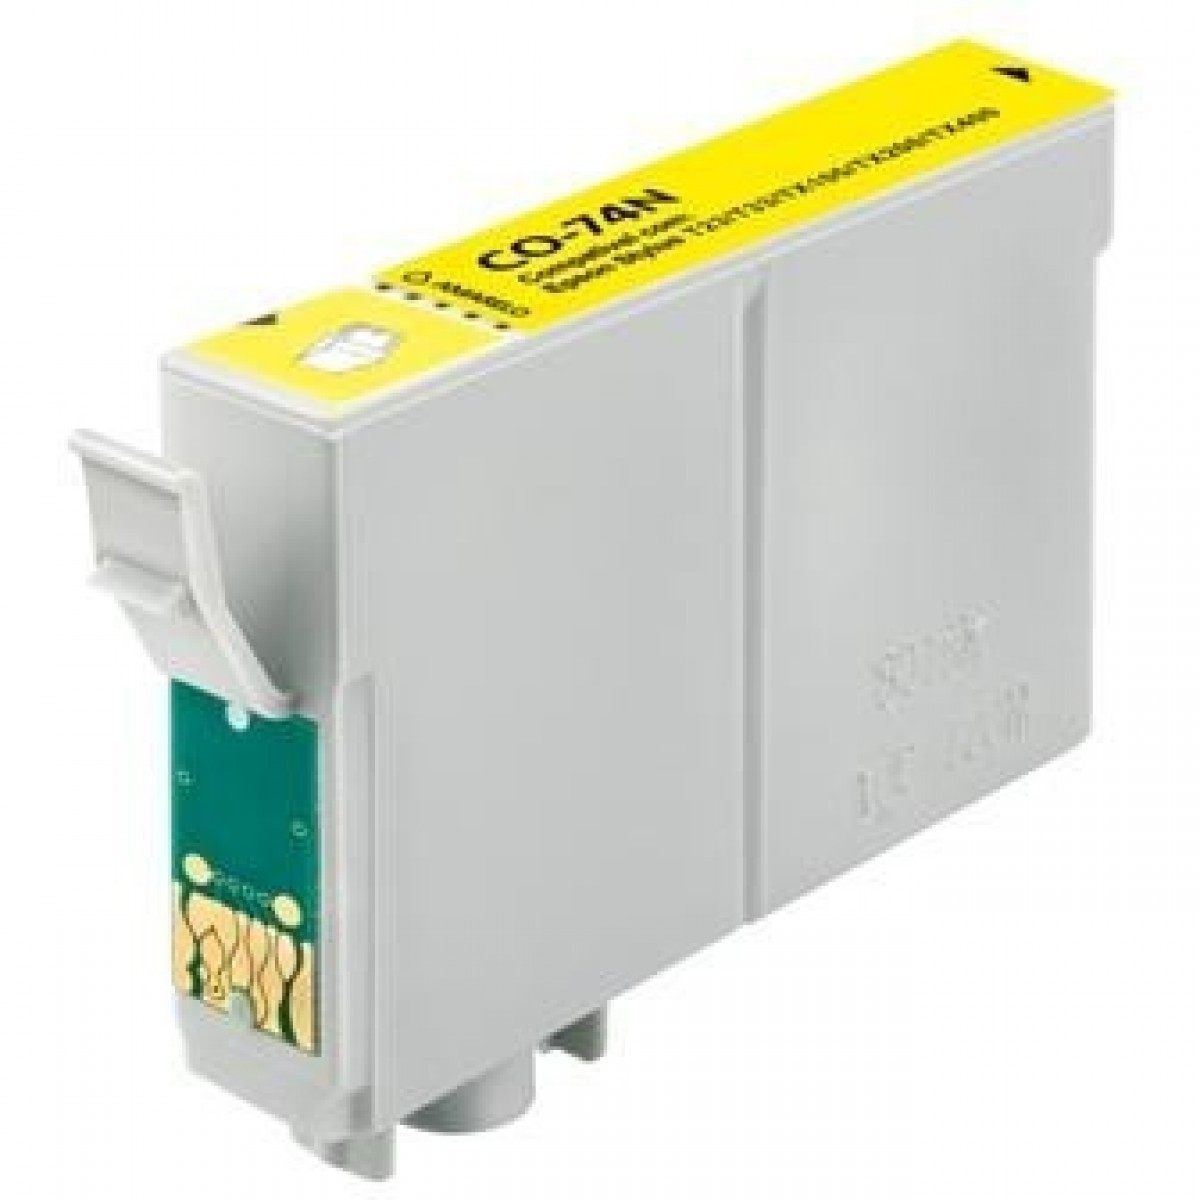 CARTUCHO EPSON TO 734N YELLOW COMP.